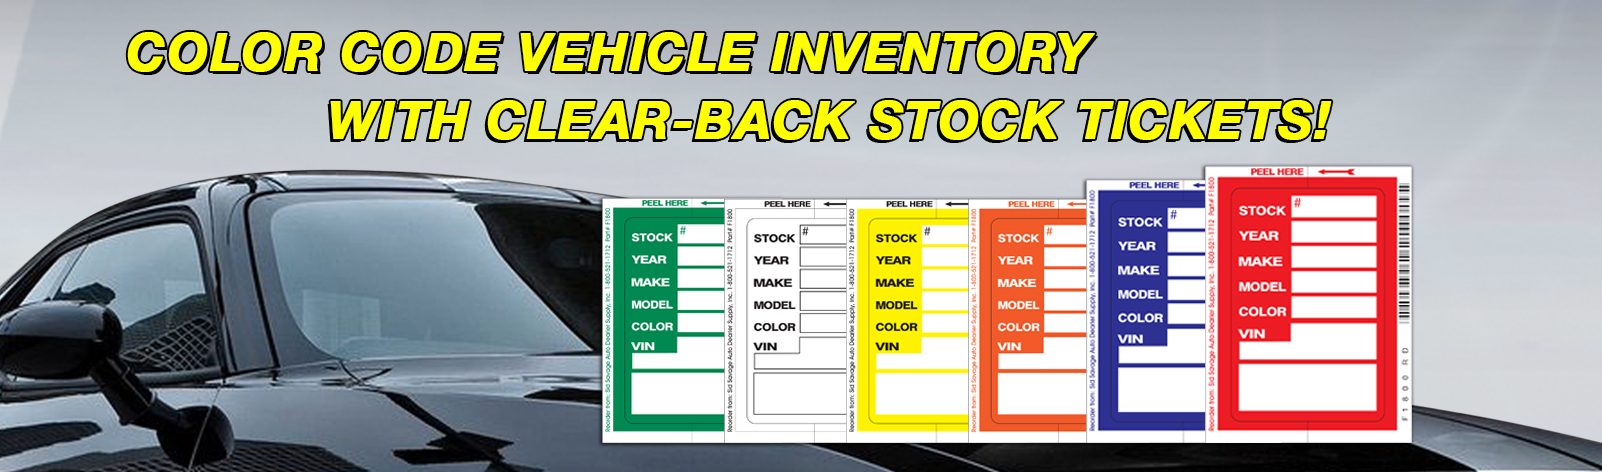 Color code vehicle inventory with Clear-Back Stock Tickets!